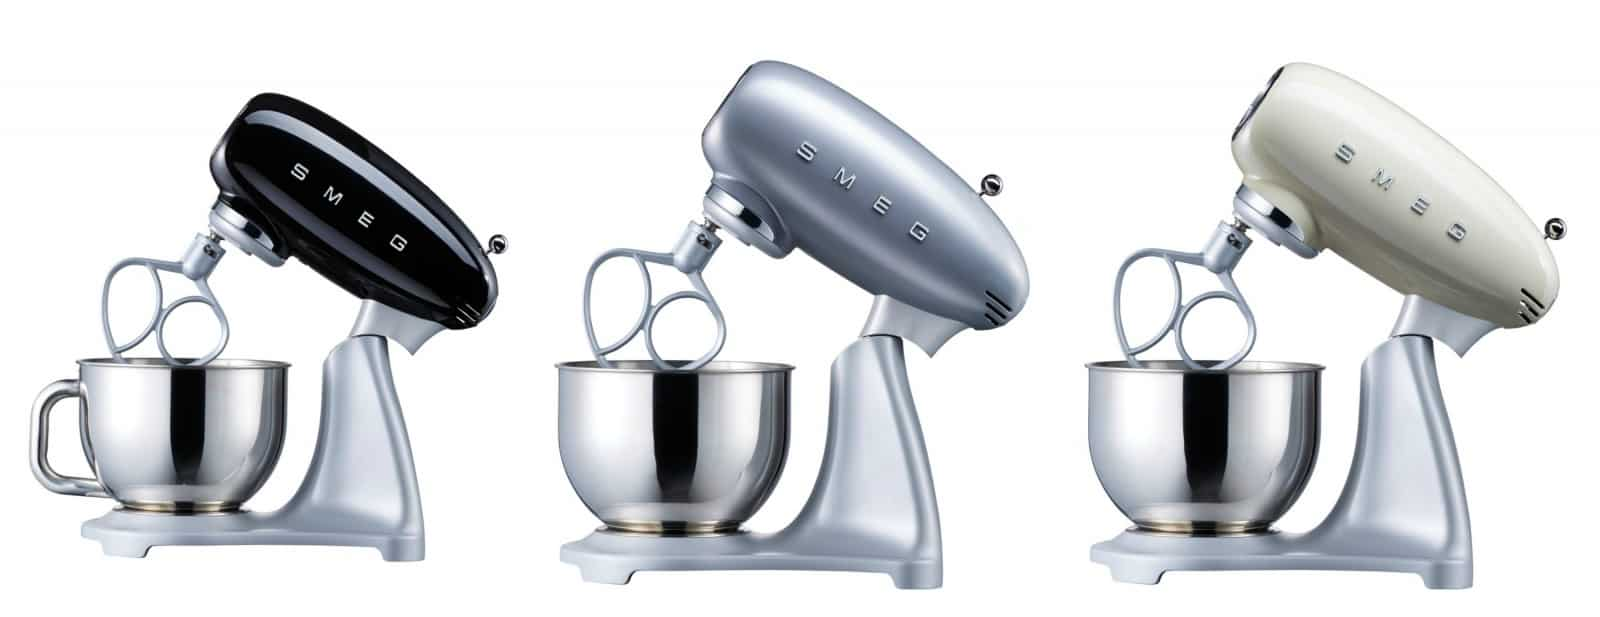 Colourful Kitchen Appliances New Small Kitchen Appliances From Smeg Dont Call Me Penny